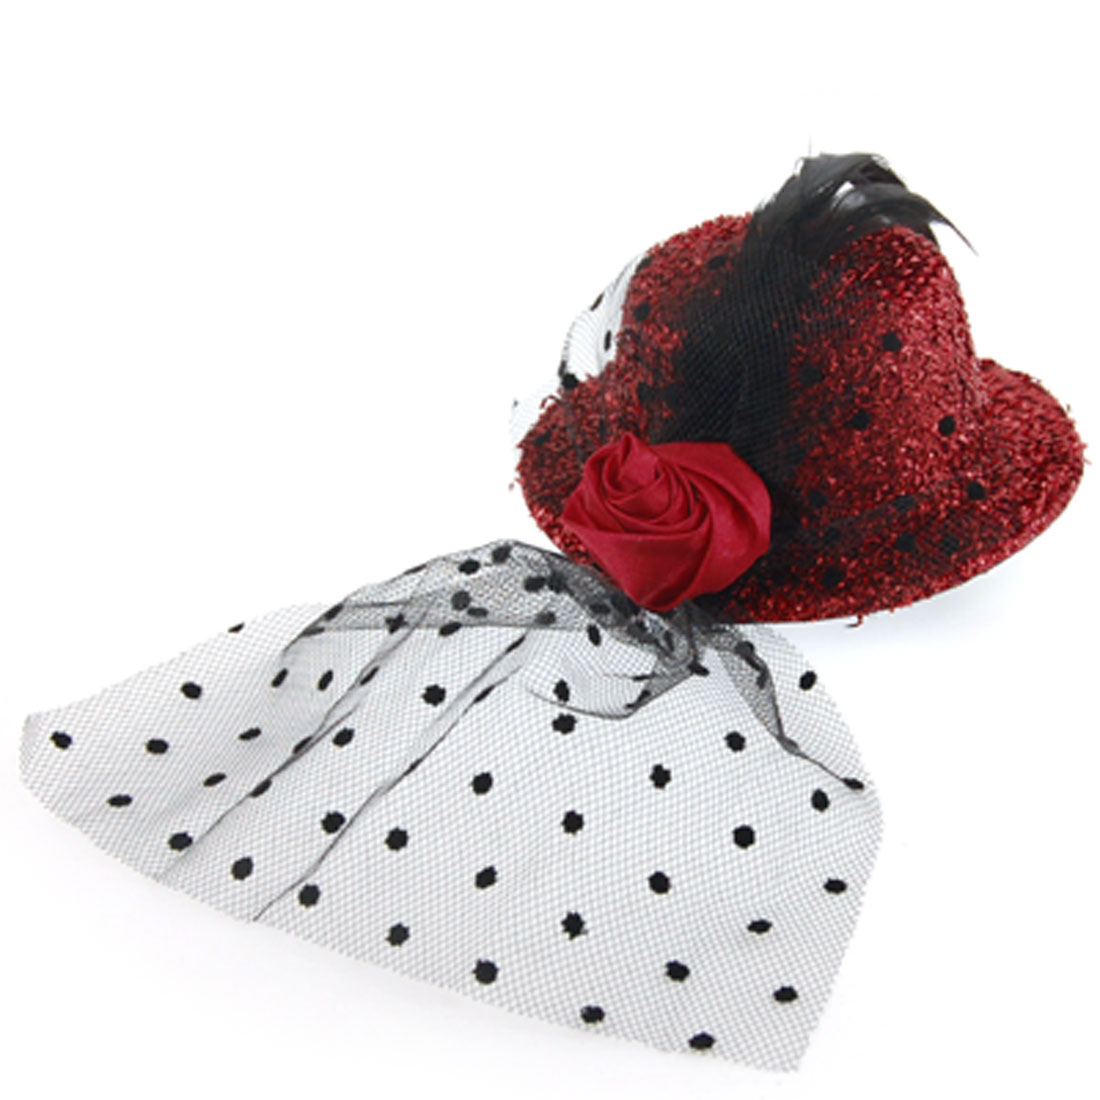 Feather Accent Rose Brim Textured Red Mini Top Fascinators Hat Hair Clip for Women